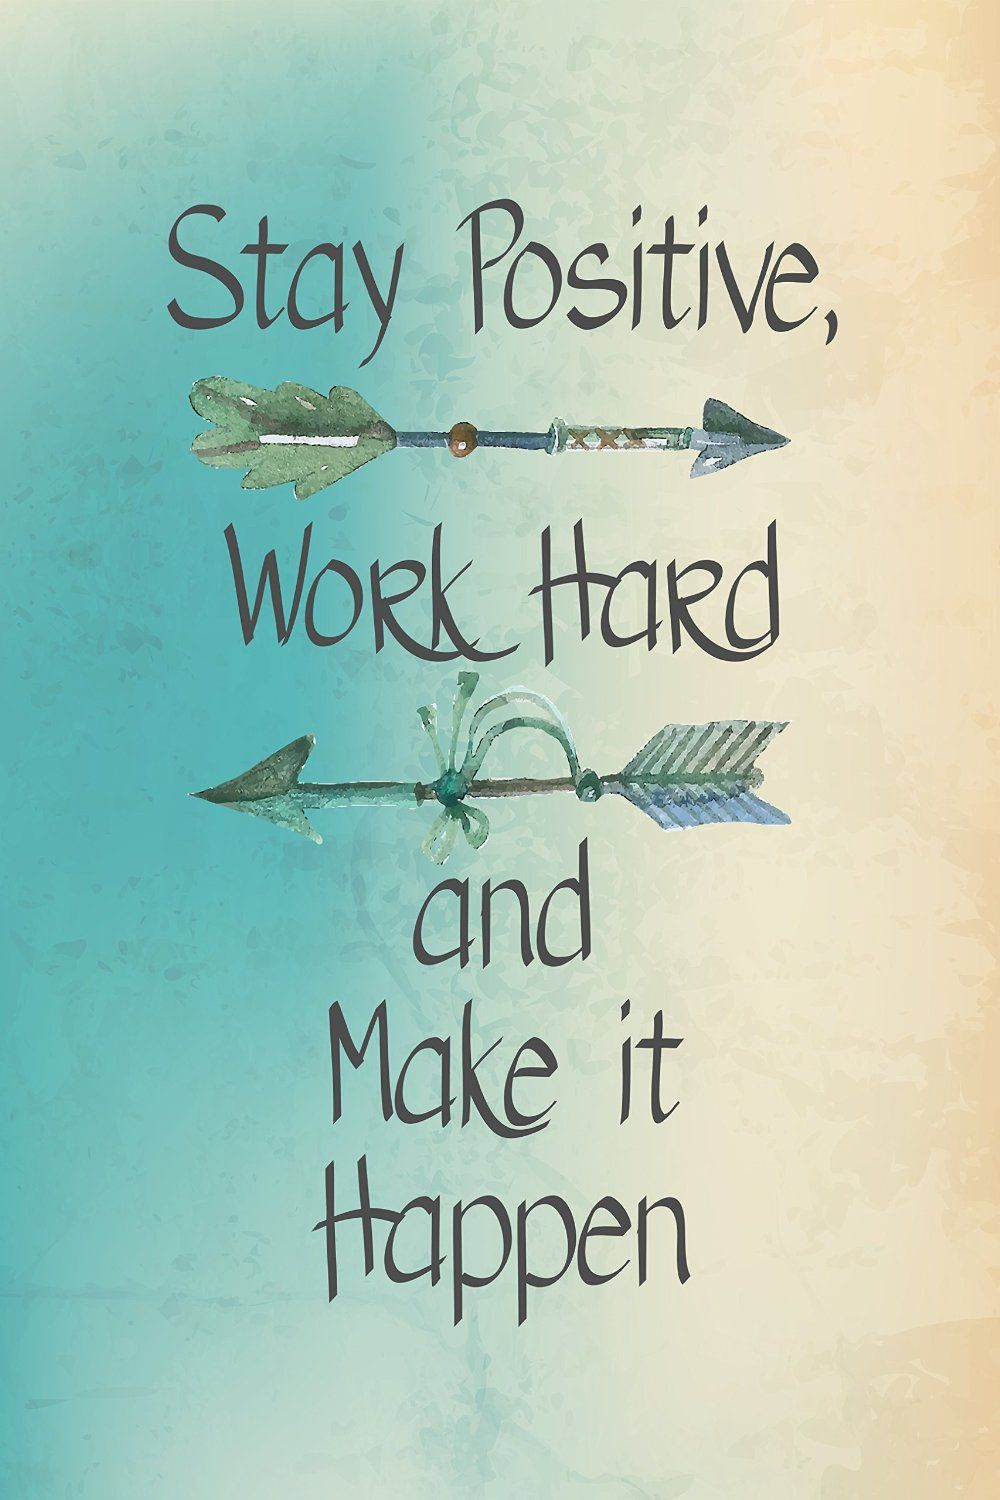 stay positive work hard and make it happen cosas para el alma